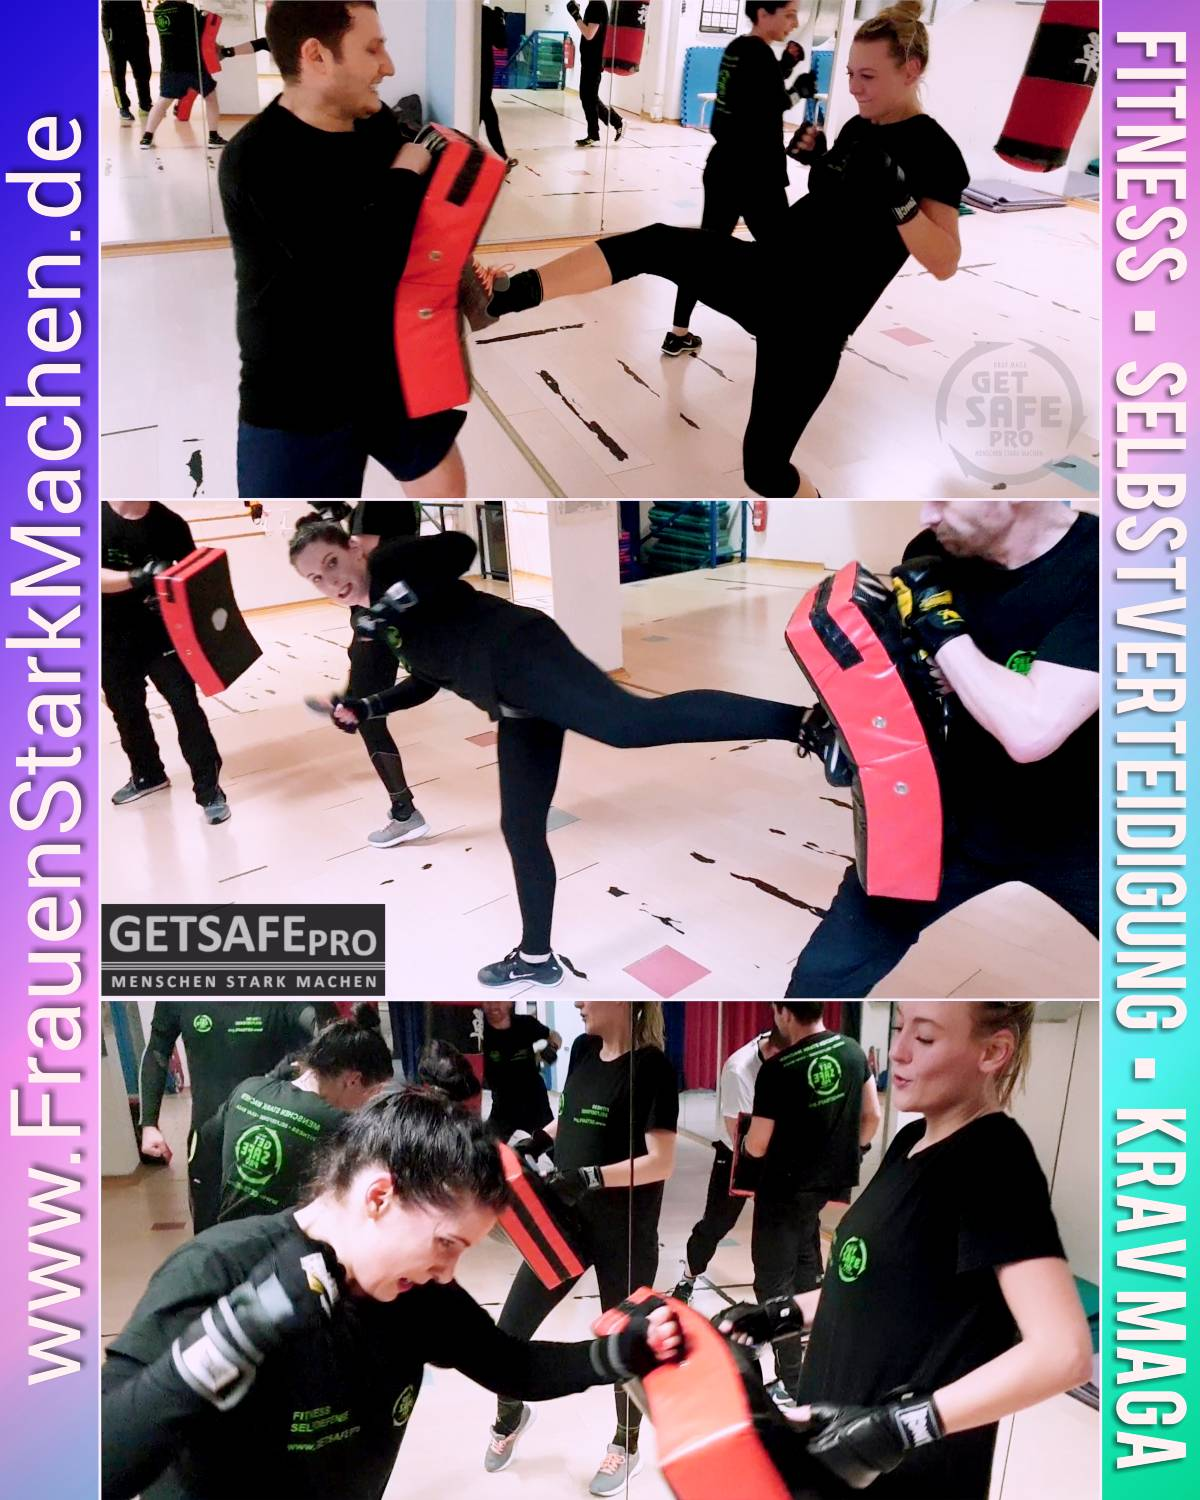 GETSAFEpro Krav Maga Training Mainz Selbstverteidigung Fitness-Center Mainz City (62)